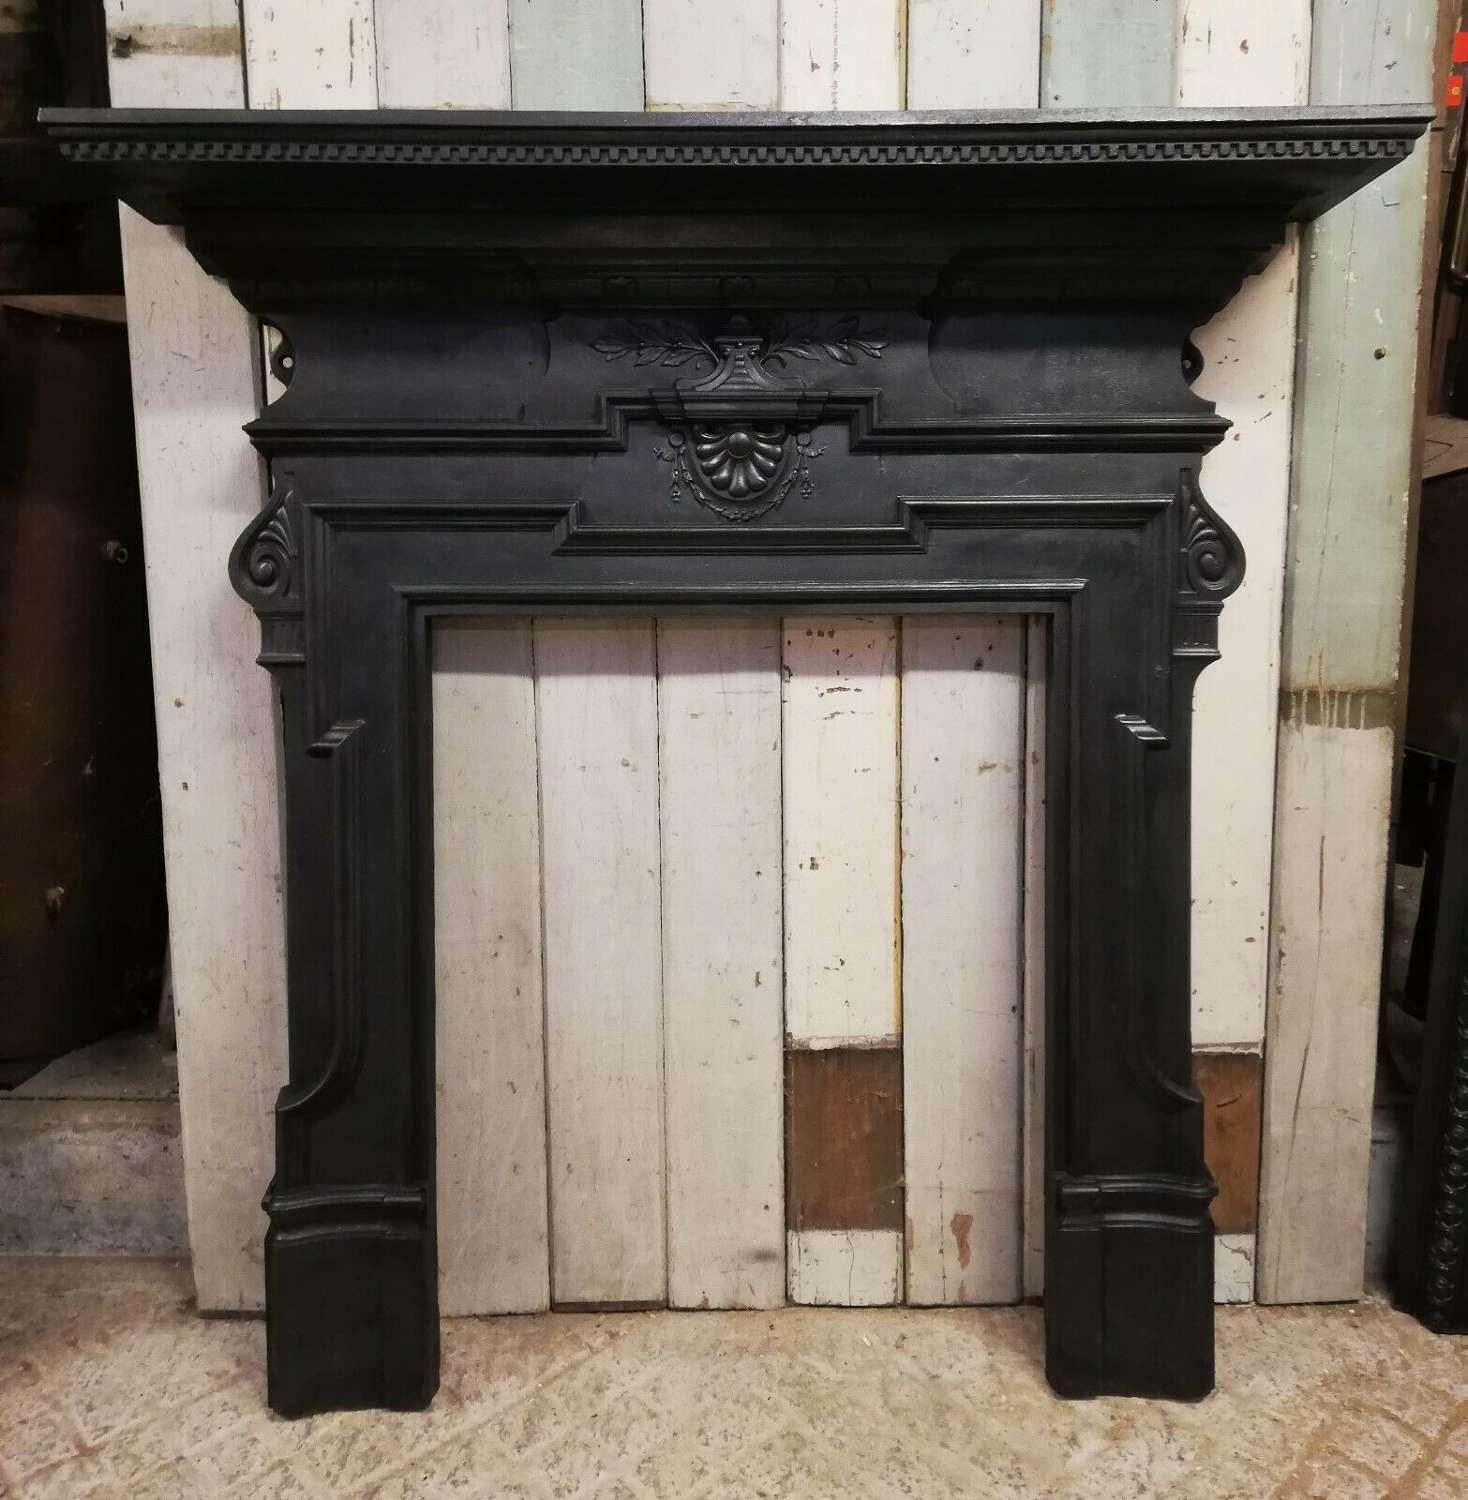 FS0086 AN ORNATE VICTORIAN CAST IRON FIRE SURROUND FOR WOOD BURNER